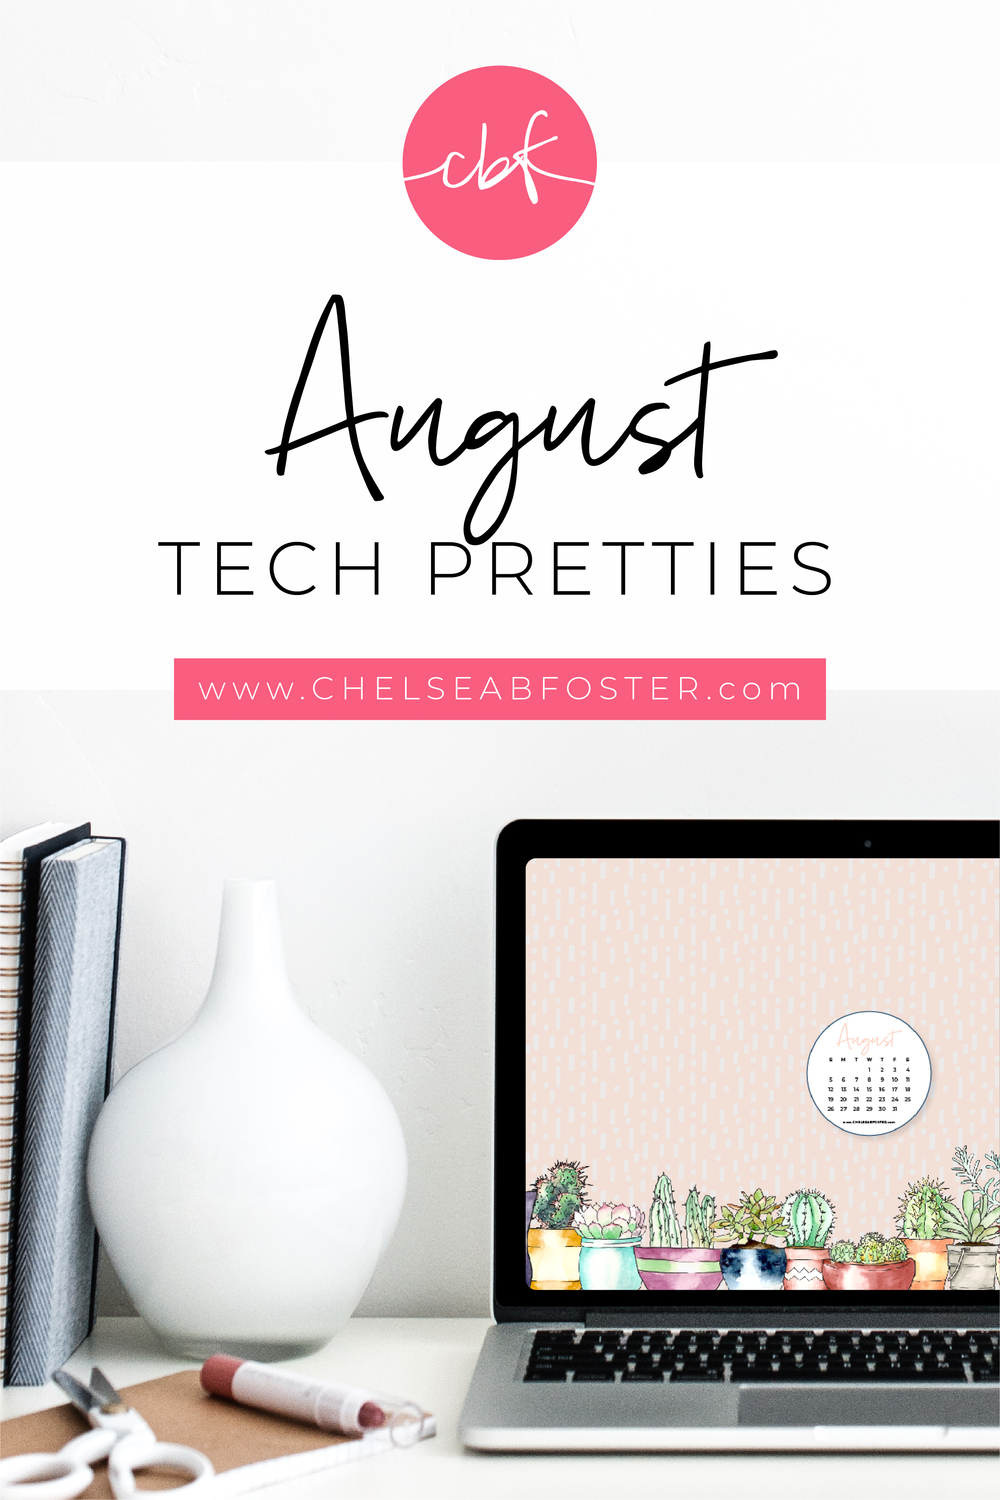 August Tech Pretties for all your devices - desktop, laptop, mobile phone, and tablet. Download for FREE on ChelseaBFoster.com - Helping creatives feel more organized, serve more clients, and live the life of their dreams through design, education, coaching, & consultation.